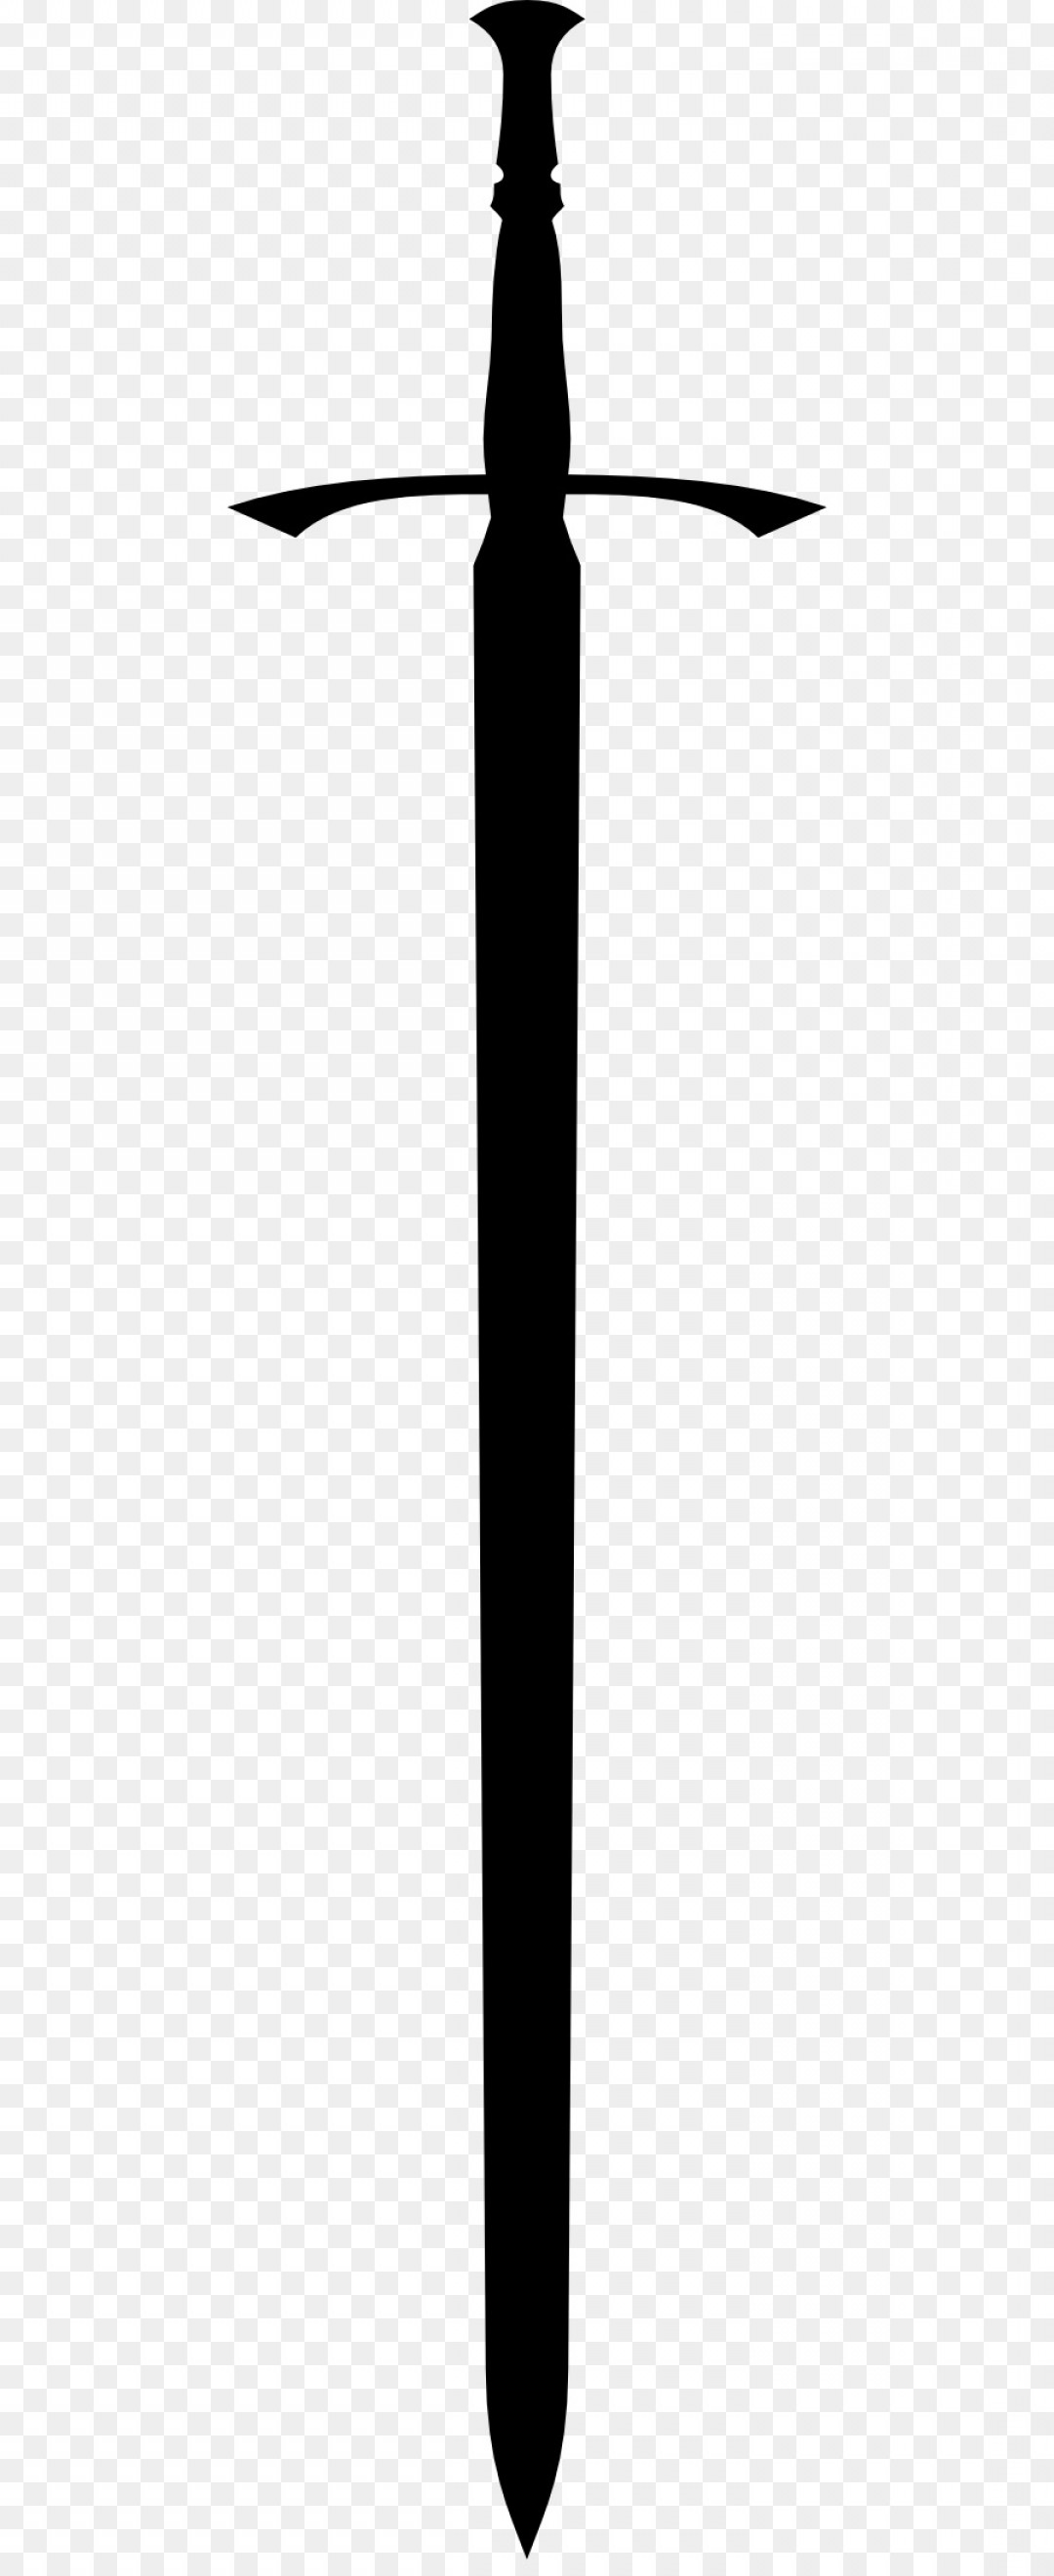 Game Of Thrones Sword Silhouette Vector: Png Black And White Sword Structure Angle Font Free Sw